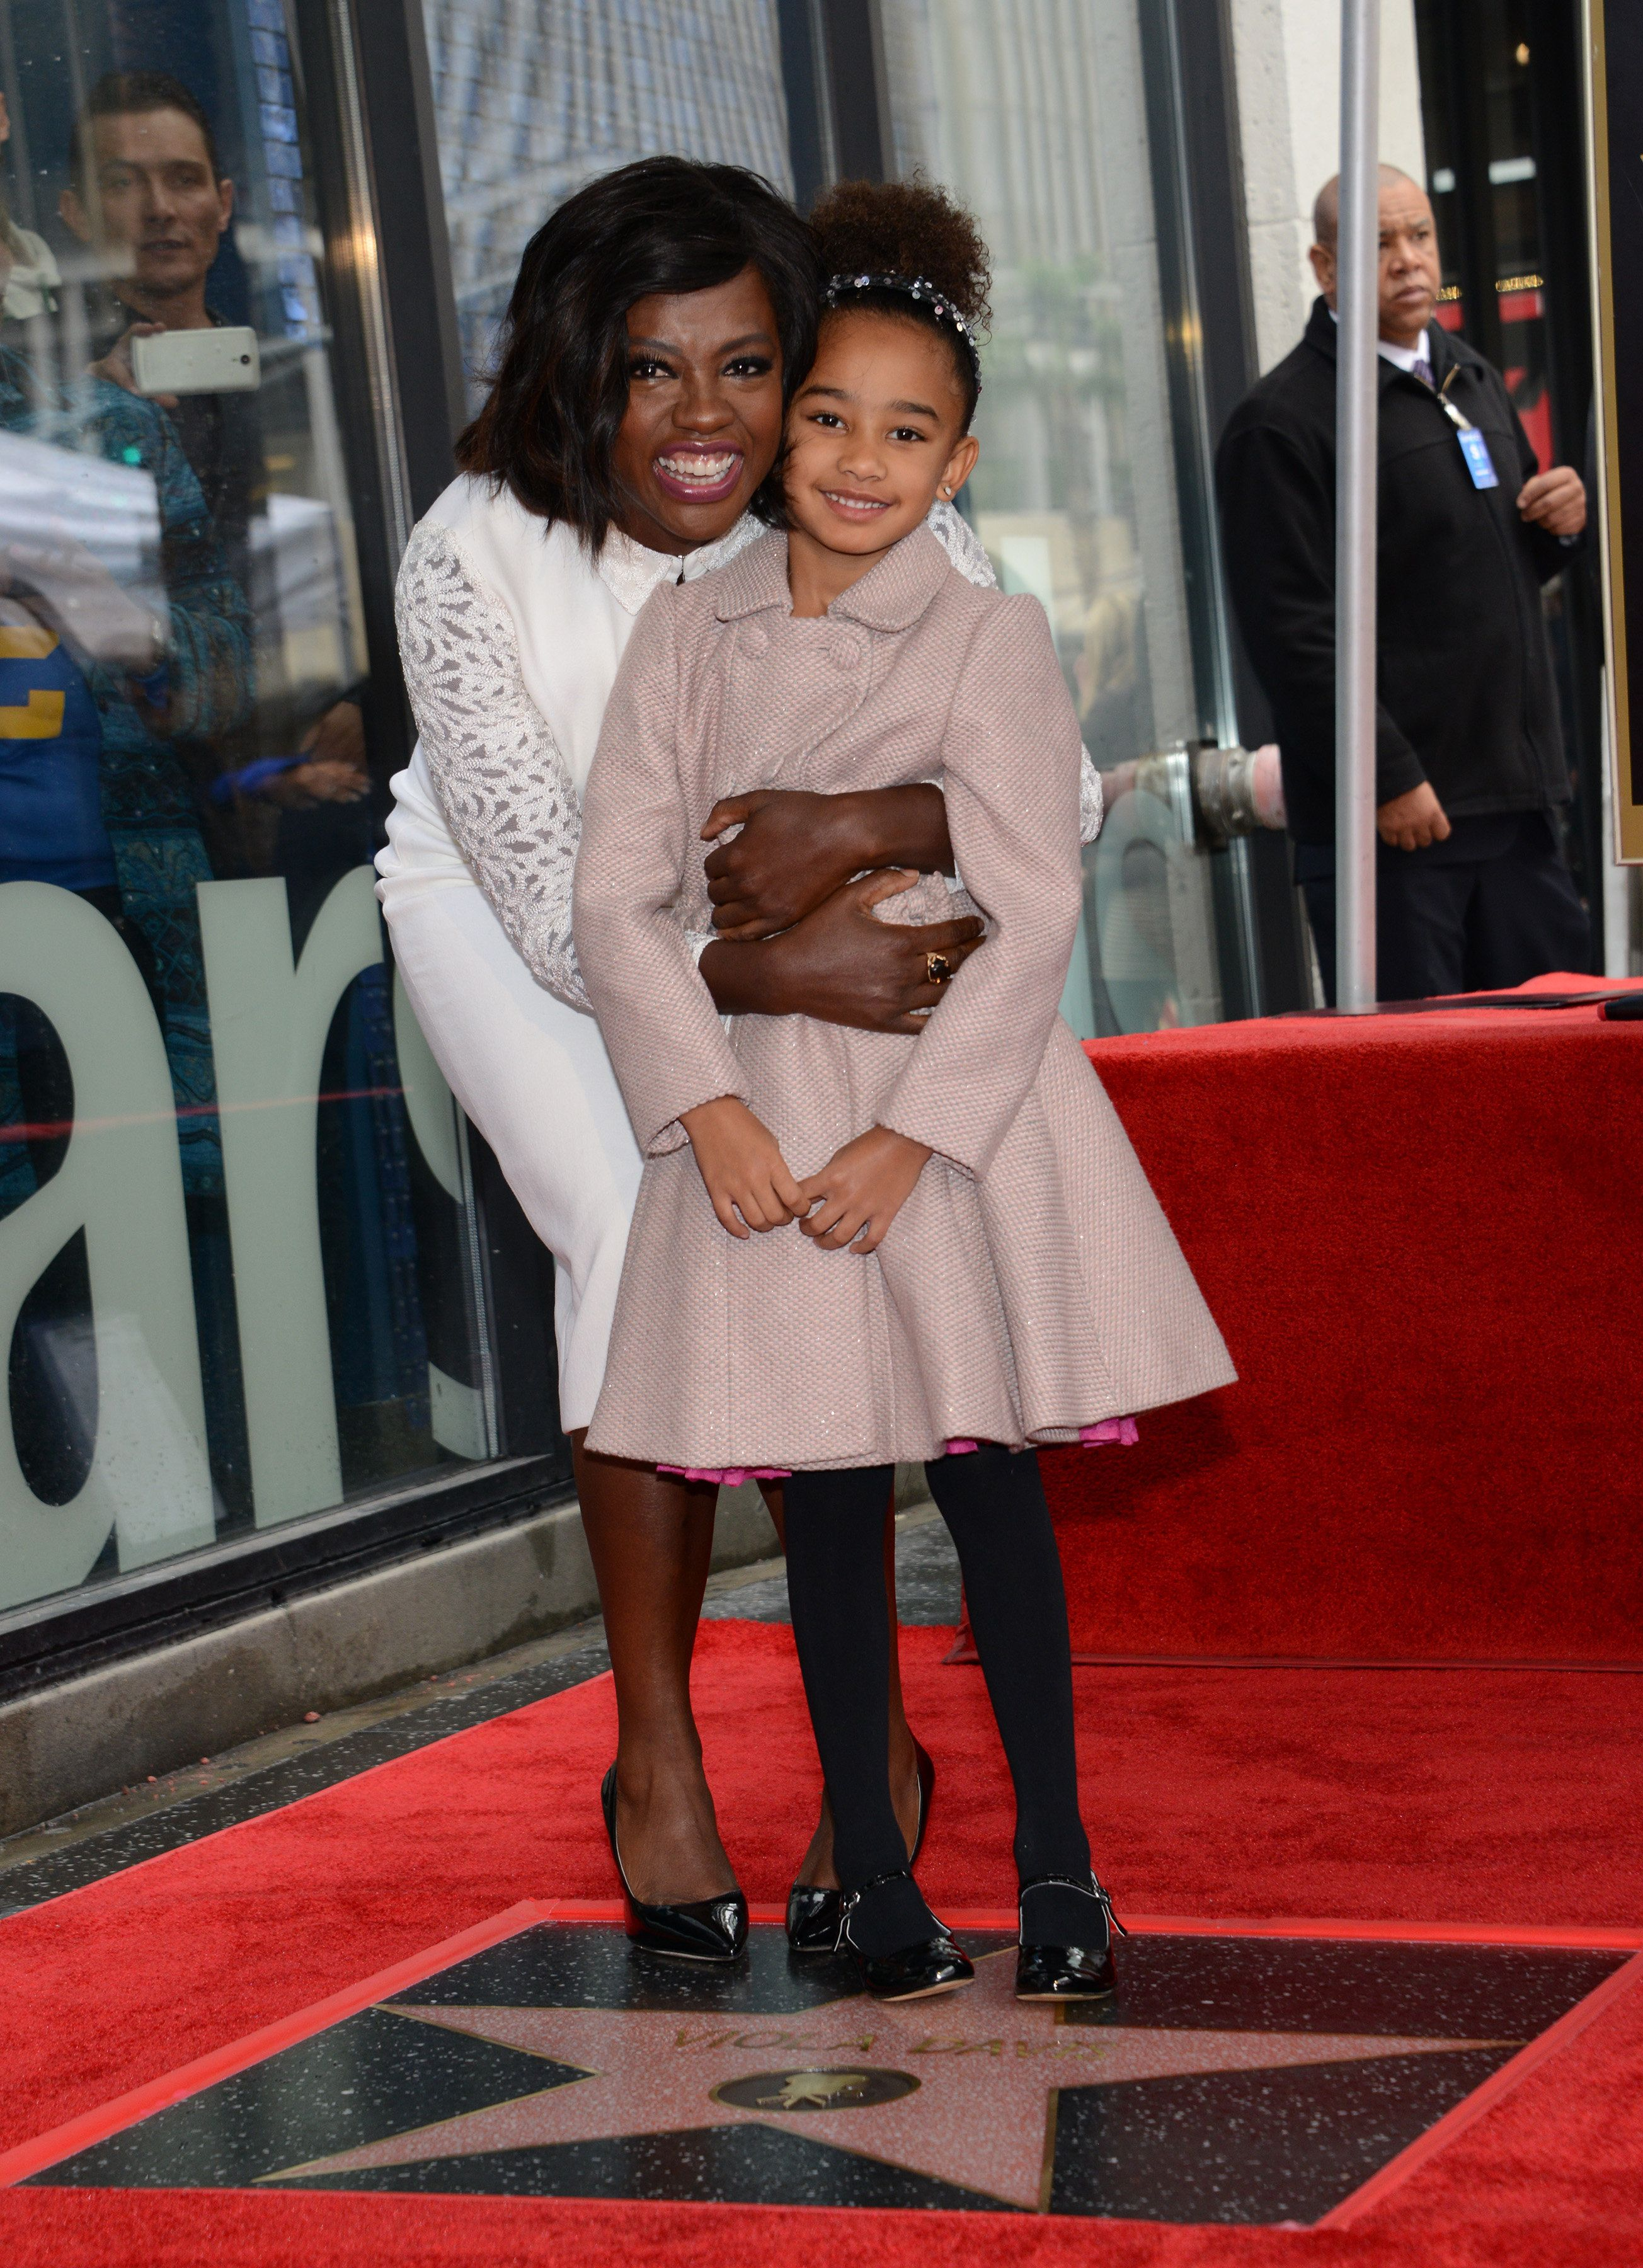 Viola Davis, with daughter Genesis, attends her Walk of Fame ceremony at 7013 Hollywood blvd in Hollywood, on January 5, 2017. / AFP / CHRIS DELMAS        (Photo credit should read CHRIS DELMAS/AFP/Getty Images)